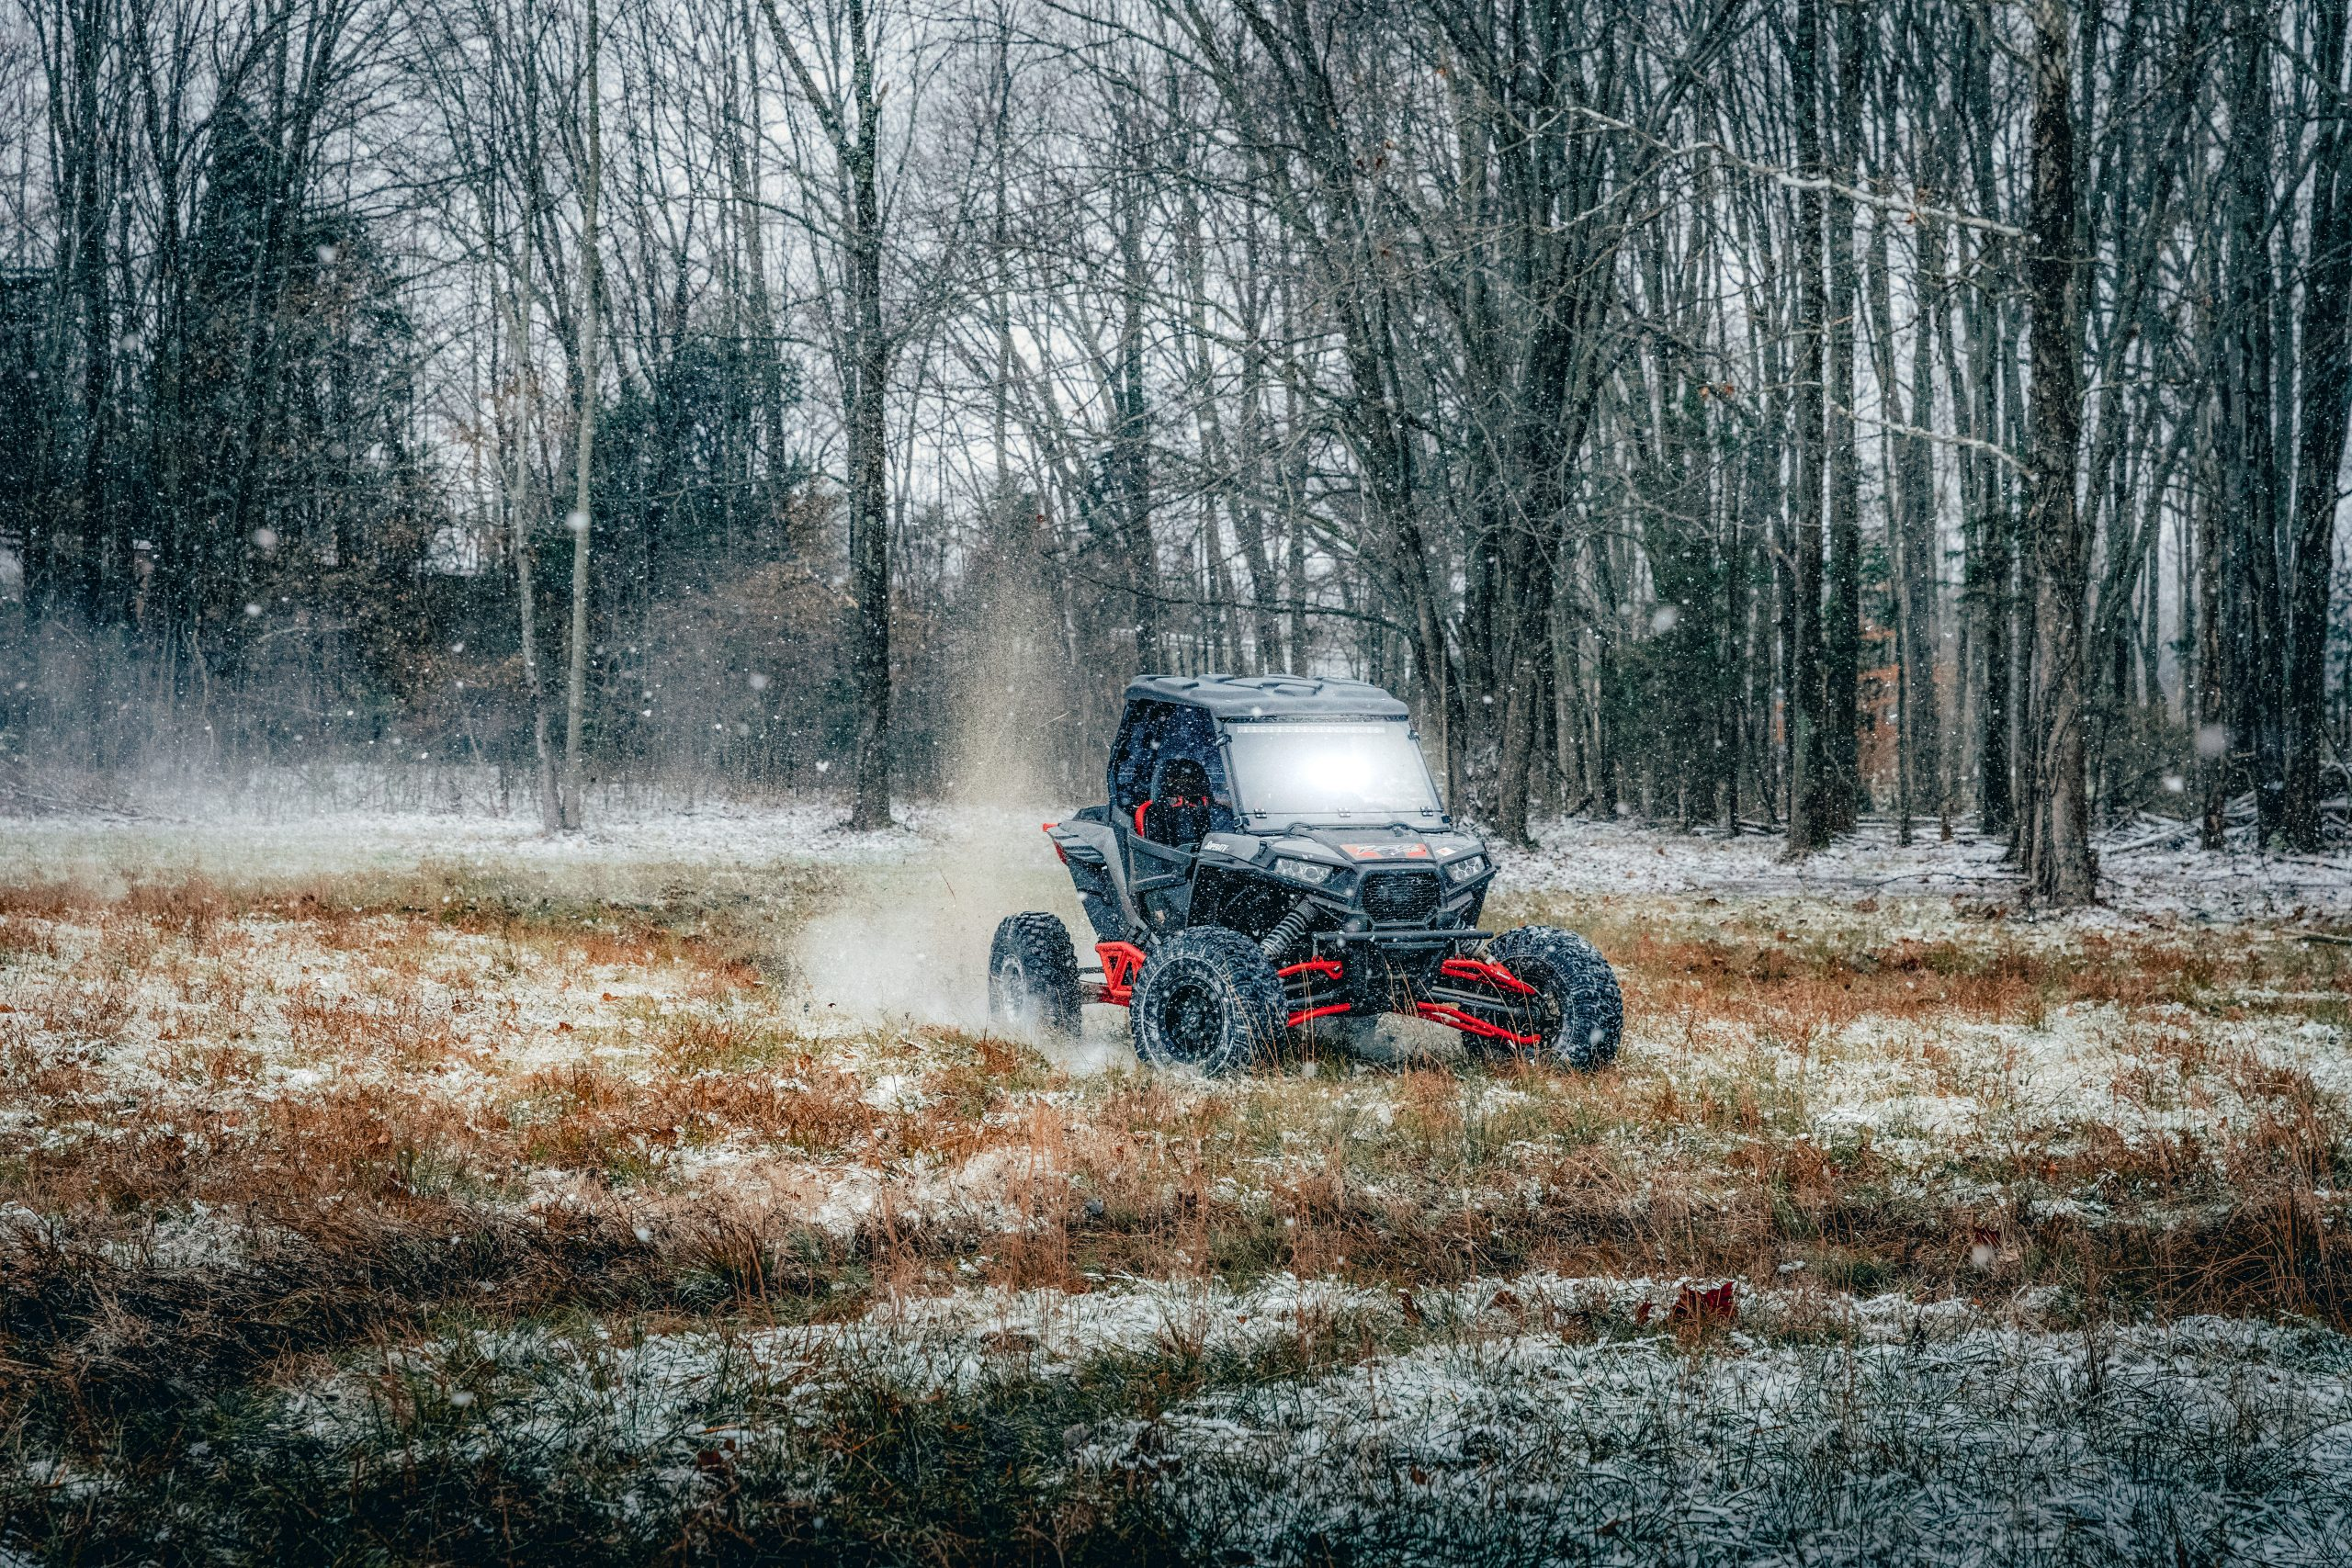 A RZR Turbo with a roof, front windshield, and rear windshield makes riding in the winter comfortable and fun.